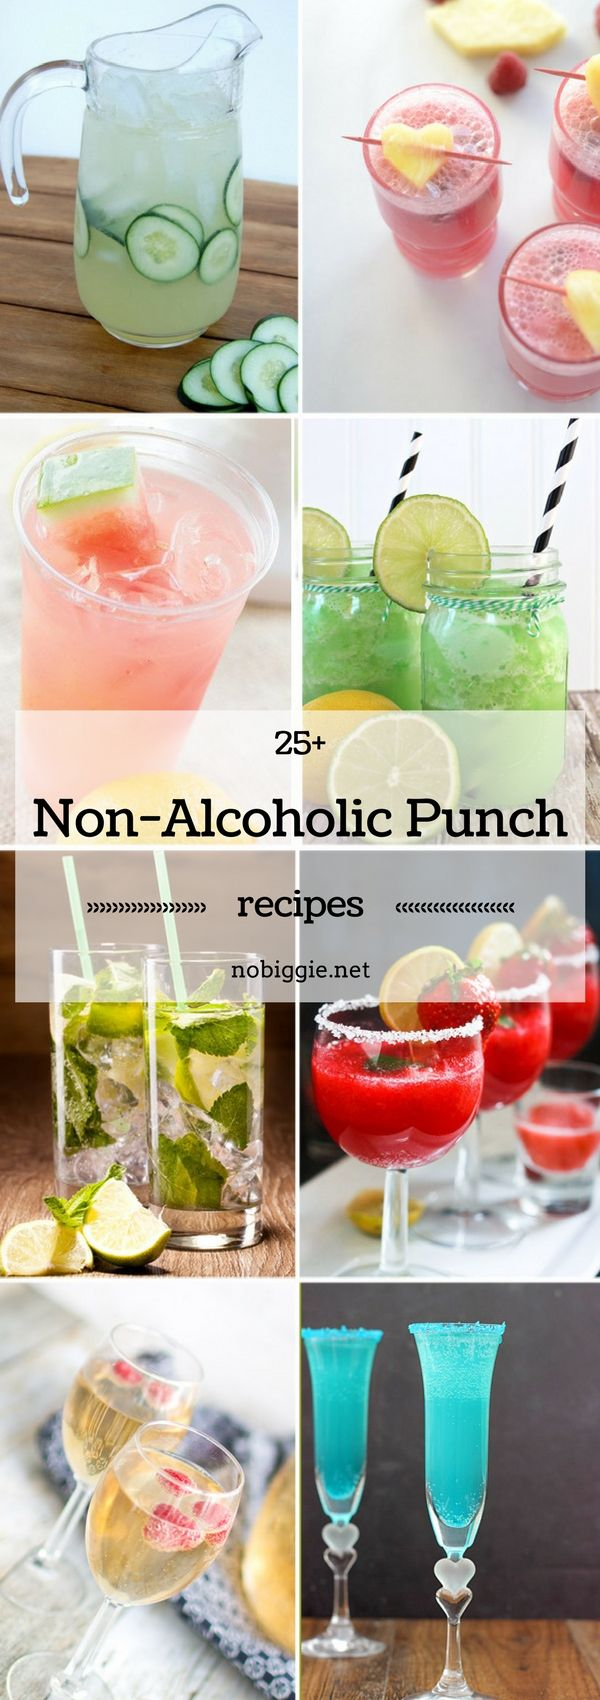 433 best baby shower punch recipes images on pinterest baby shower 25 non alcoholic punch recipes junglespirit Image collections